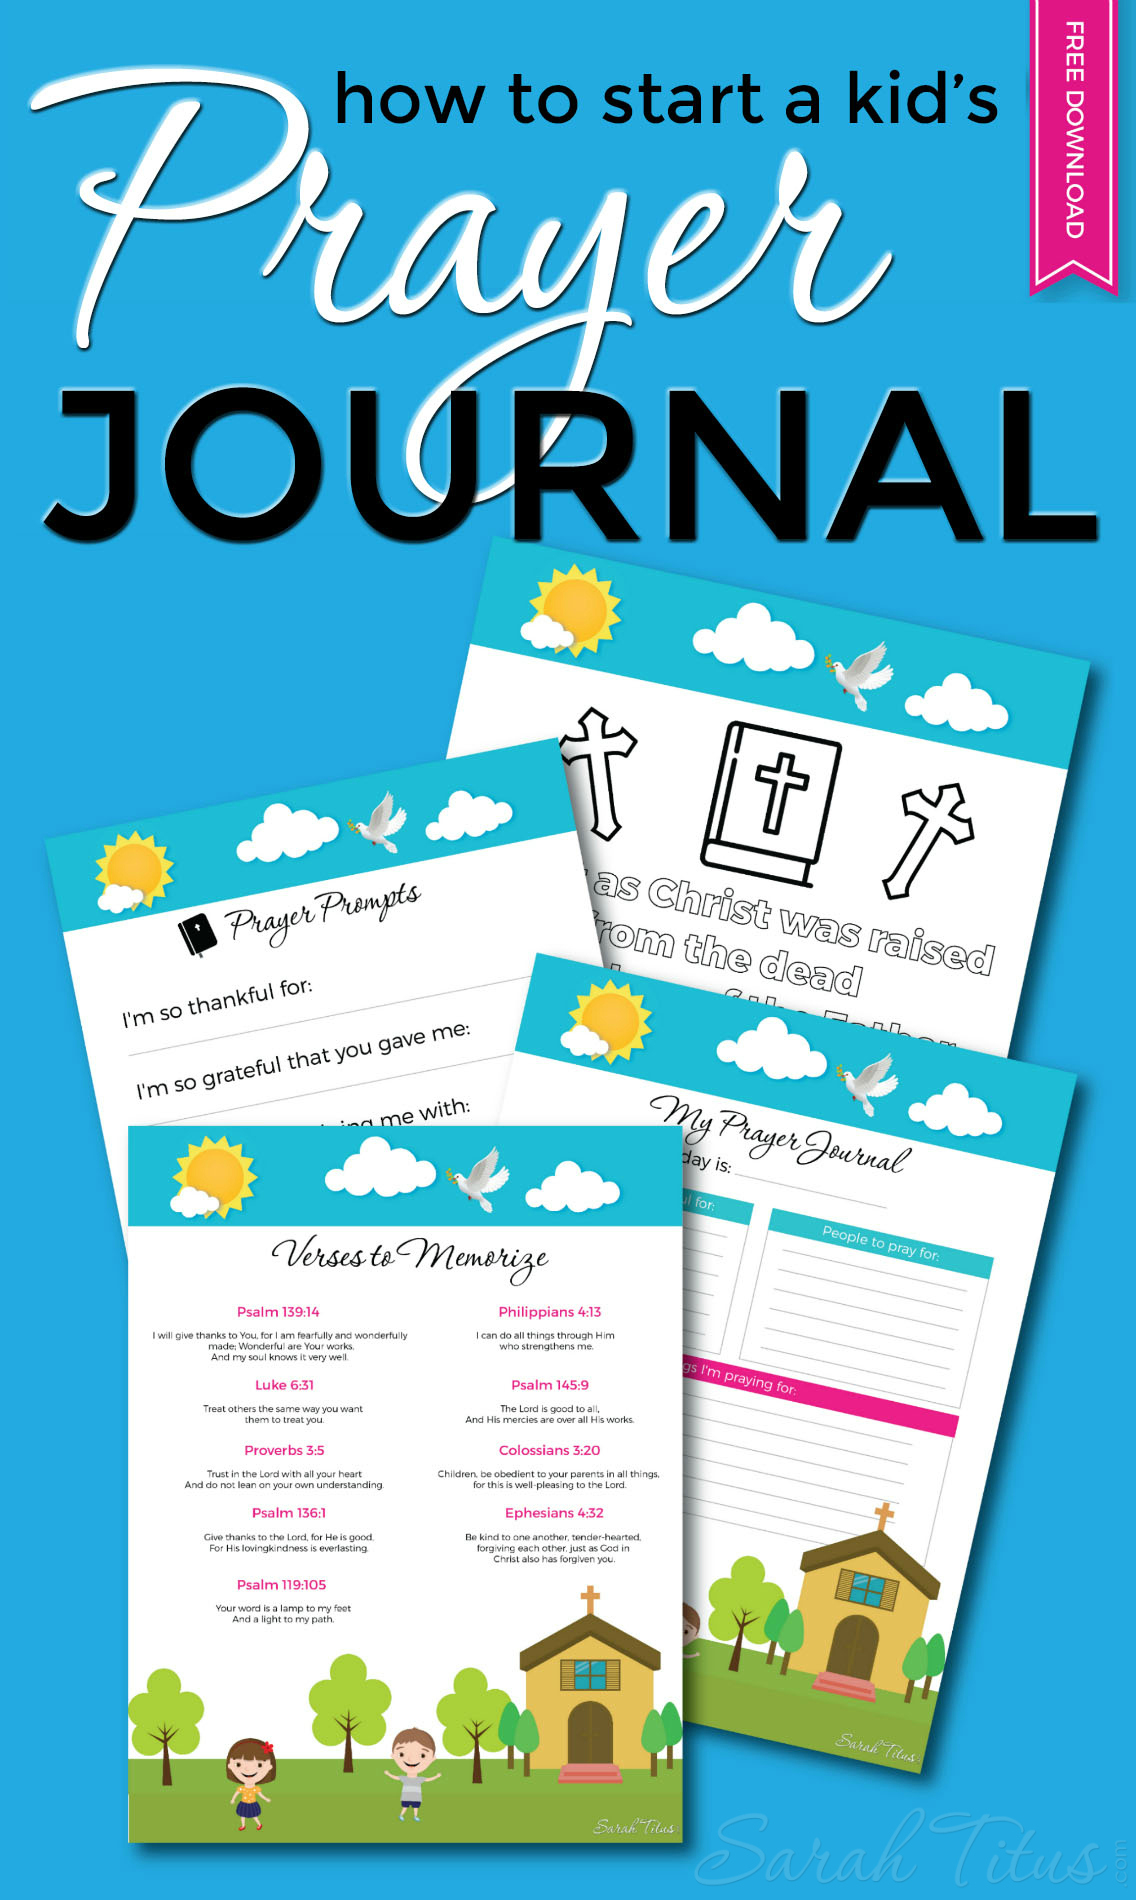 How To Start A Kid's Prayer Journal - Sarah Titus - Free Printable Prayer Journal